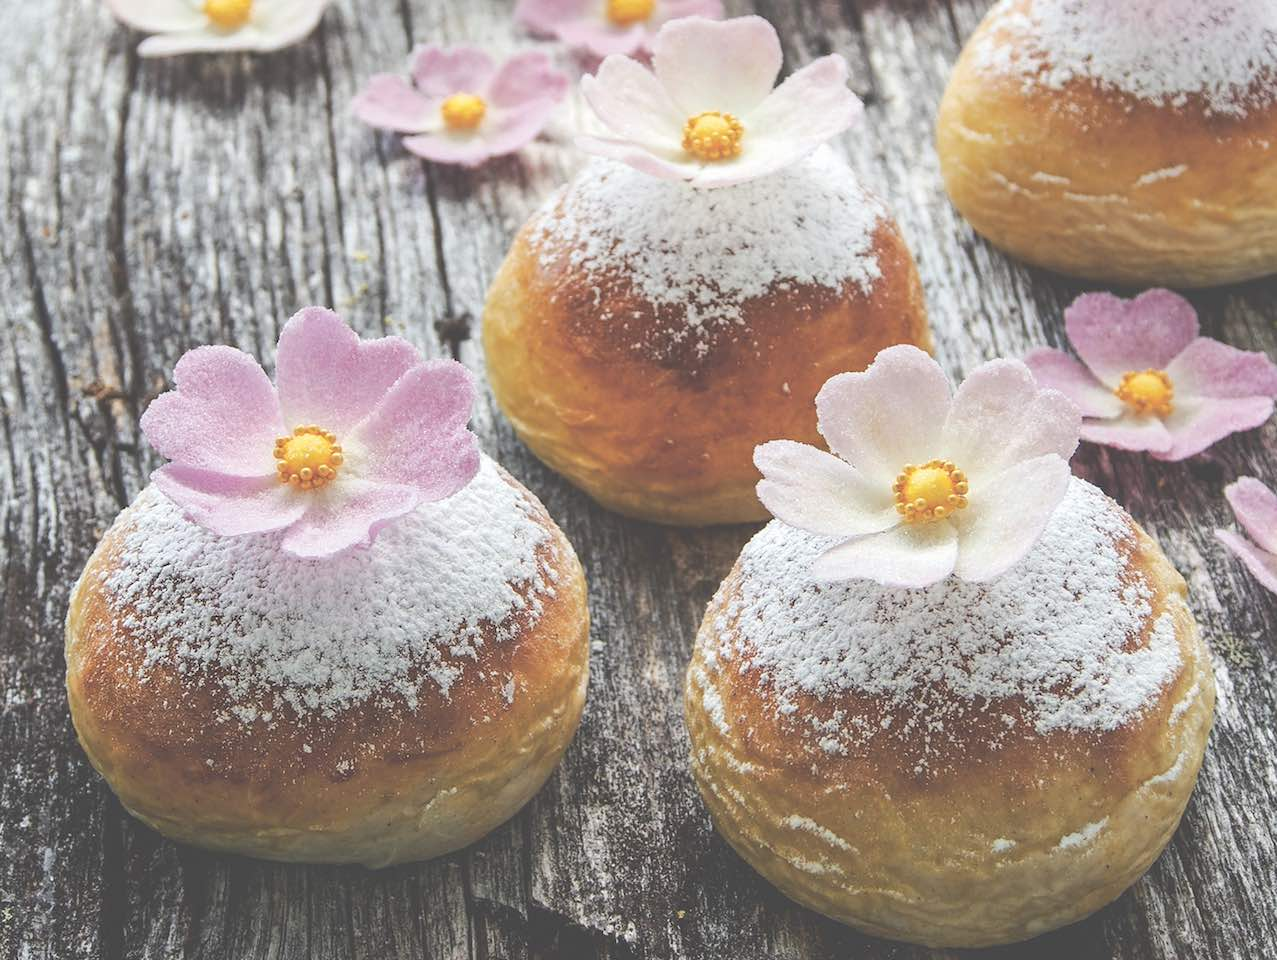 Powdered doughnuts topped with pink and white flowers.